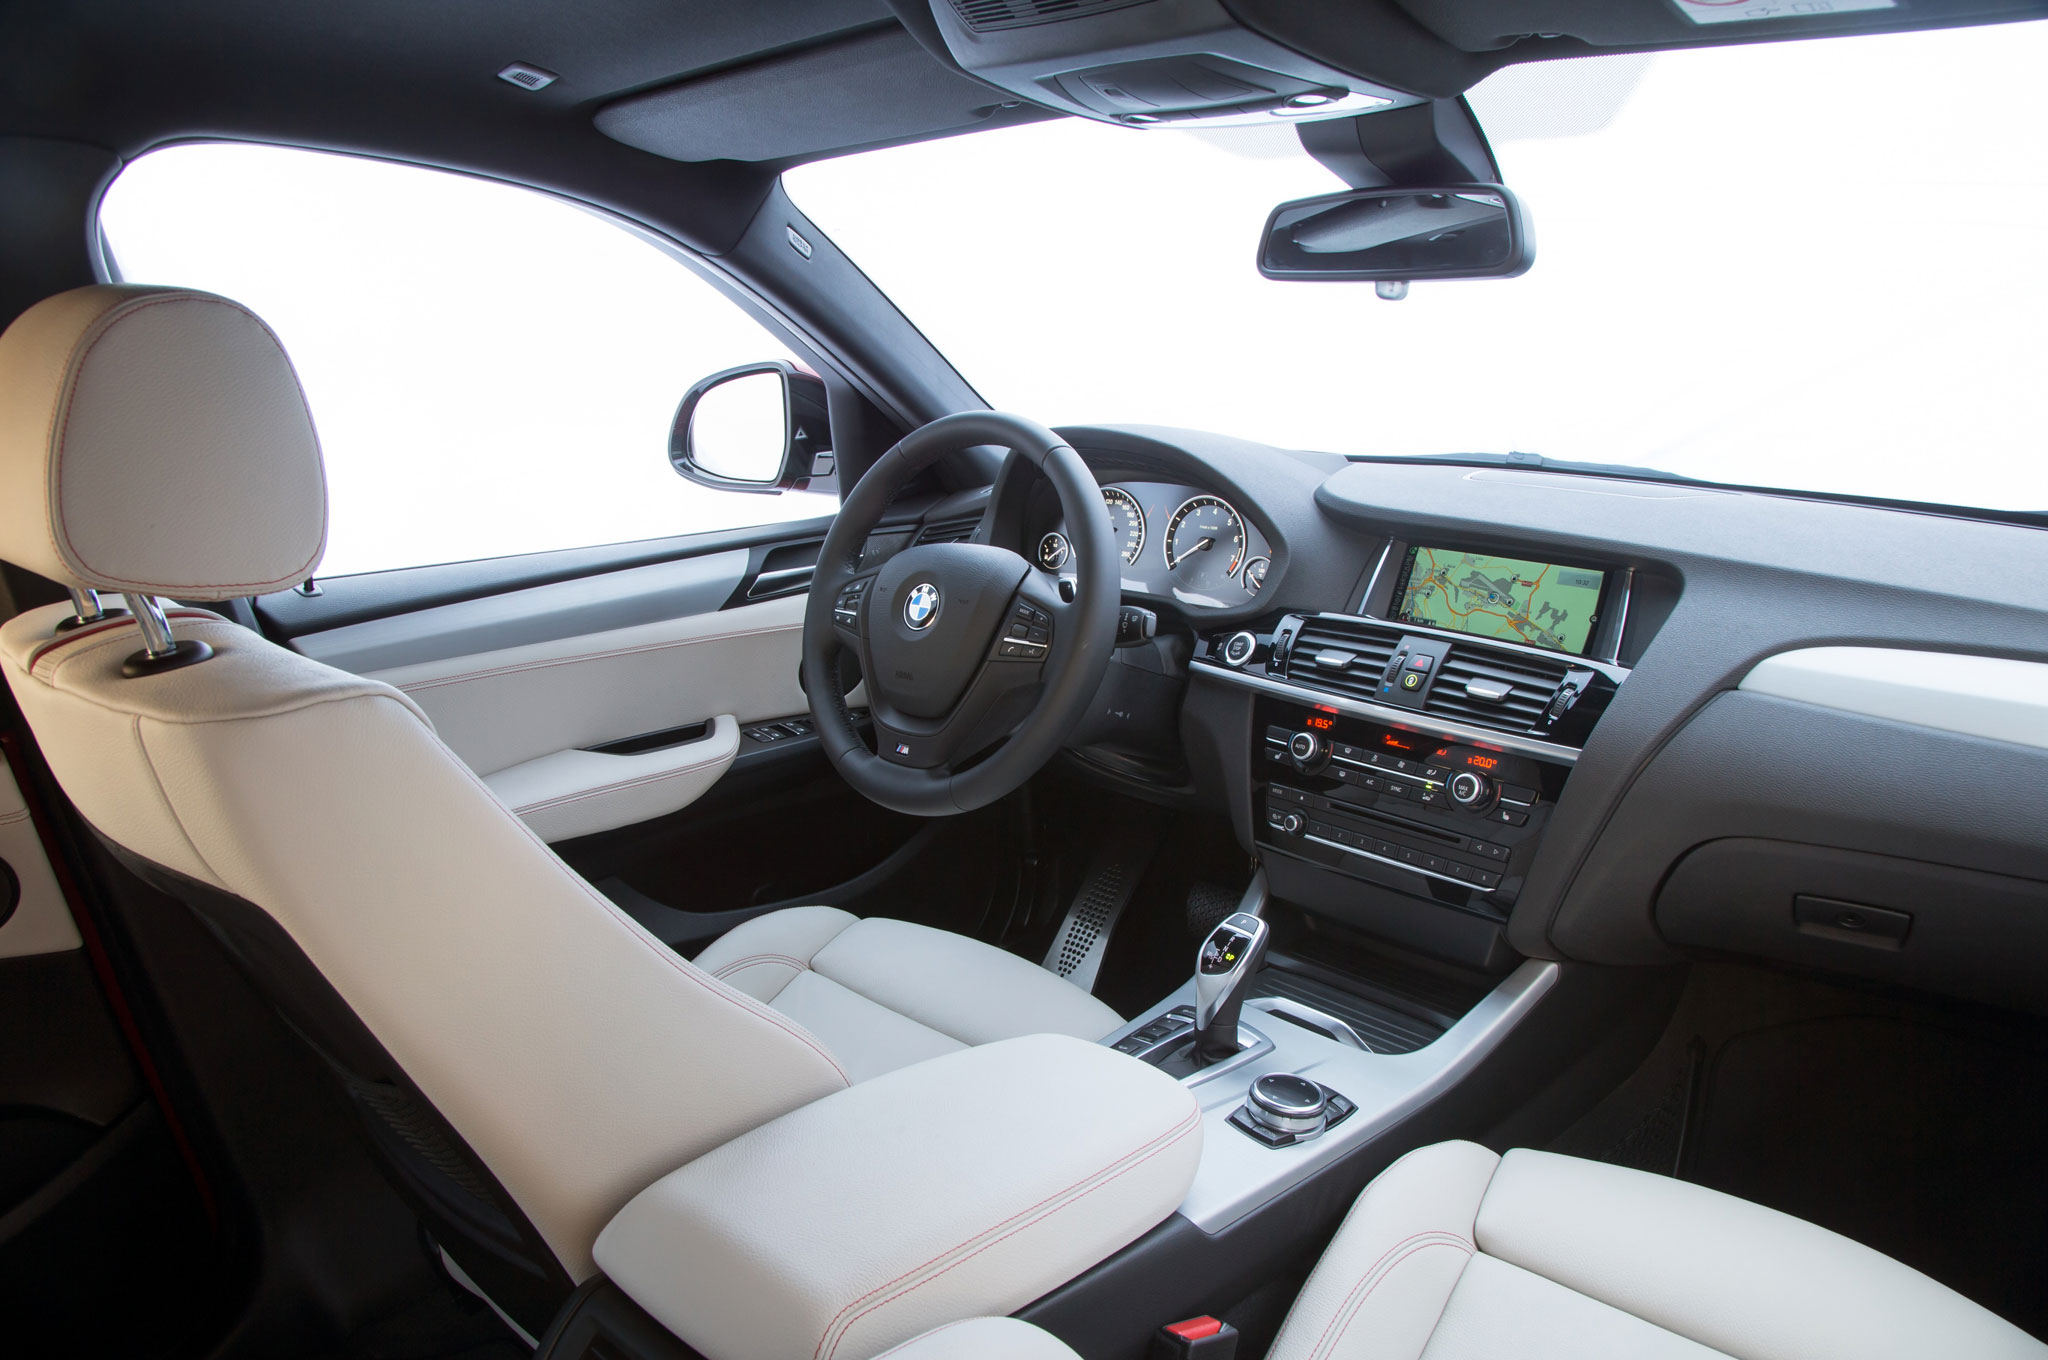 2015 Bmw X4 Front Side And Dash (Photo 5 of 13)